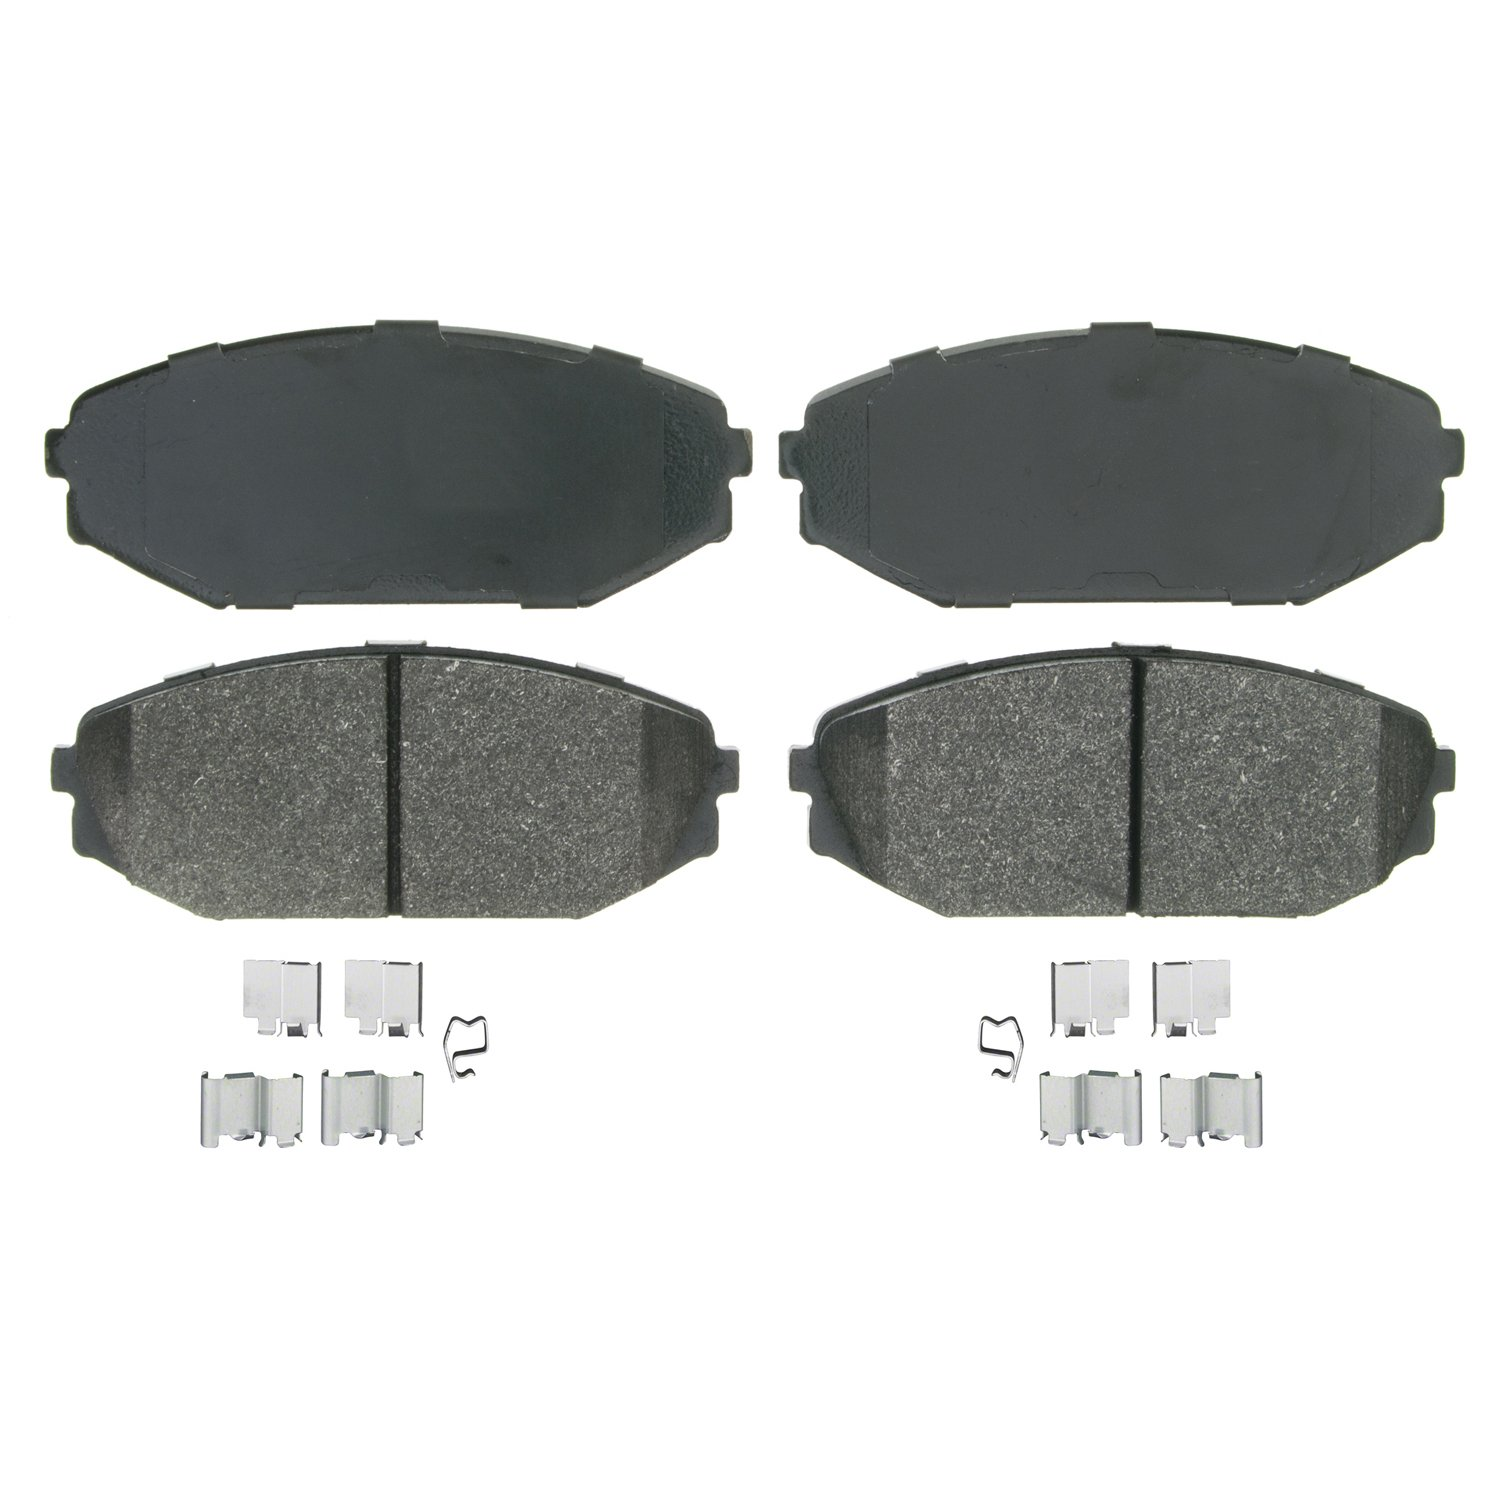 Wagner QuickStop ZX793 Semi-Metallic Disc Pad Set Includes Pad Installation Hardware Front